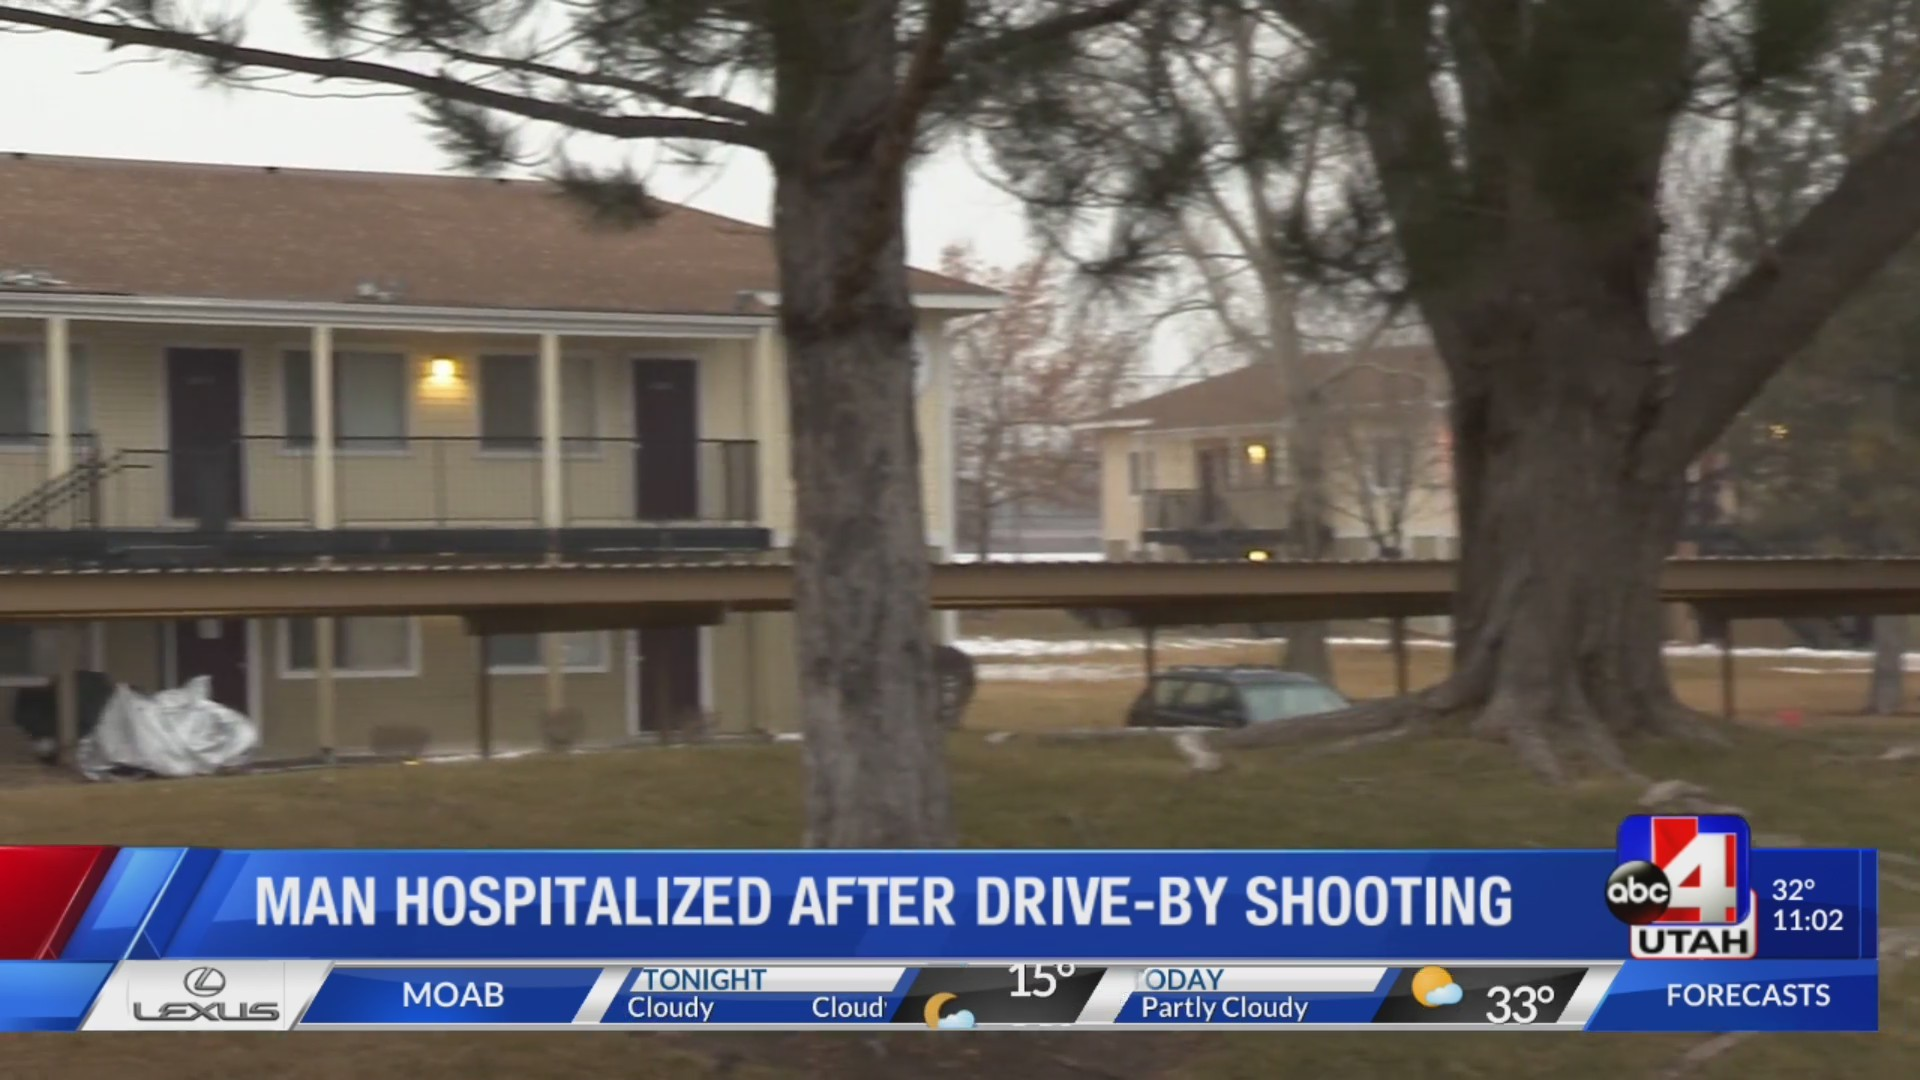 Man hospitalized after drive-by shooting